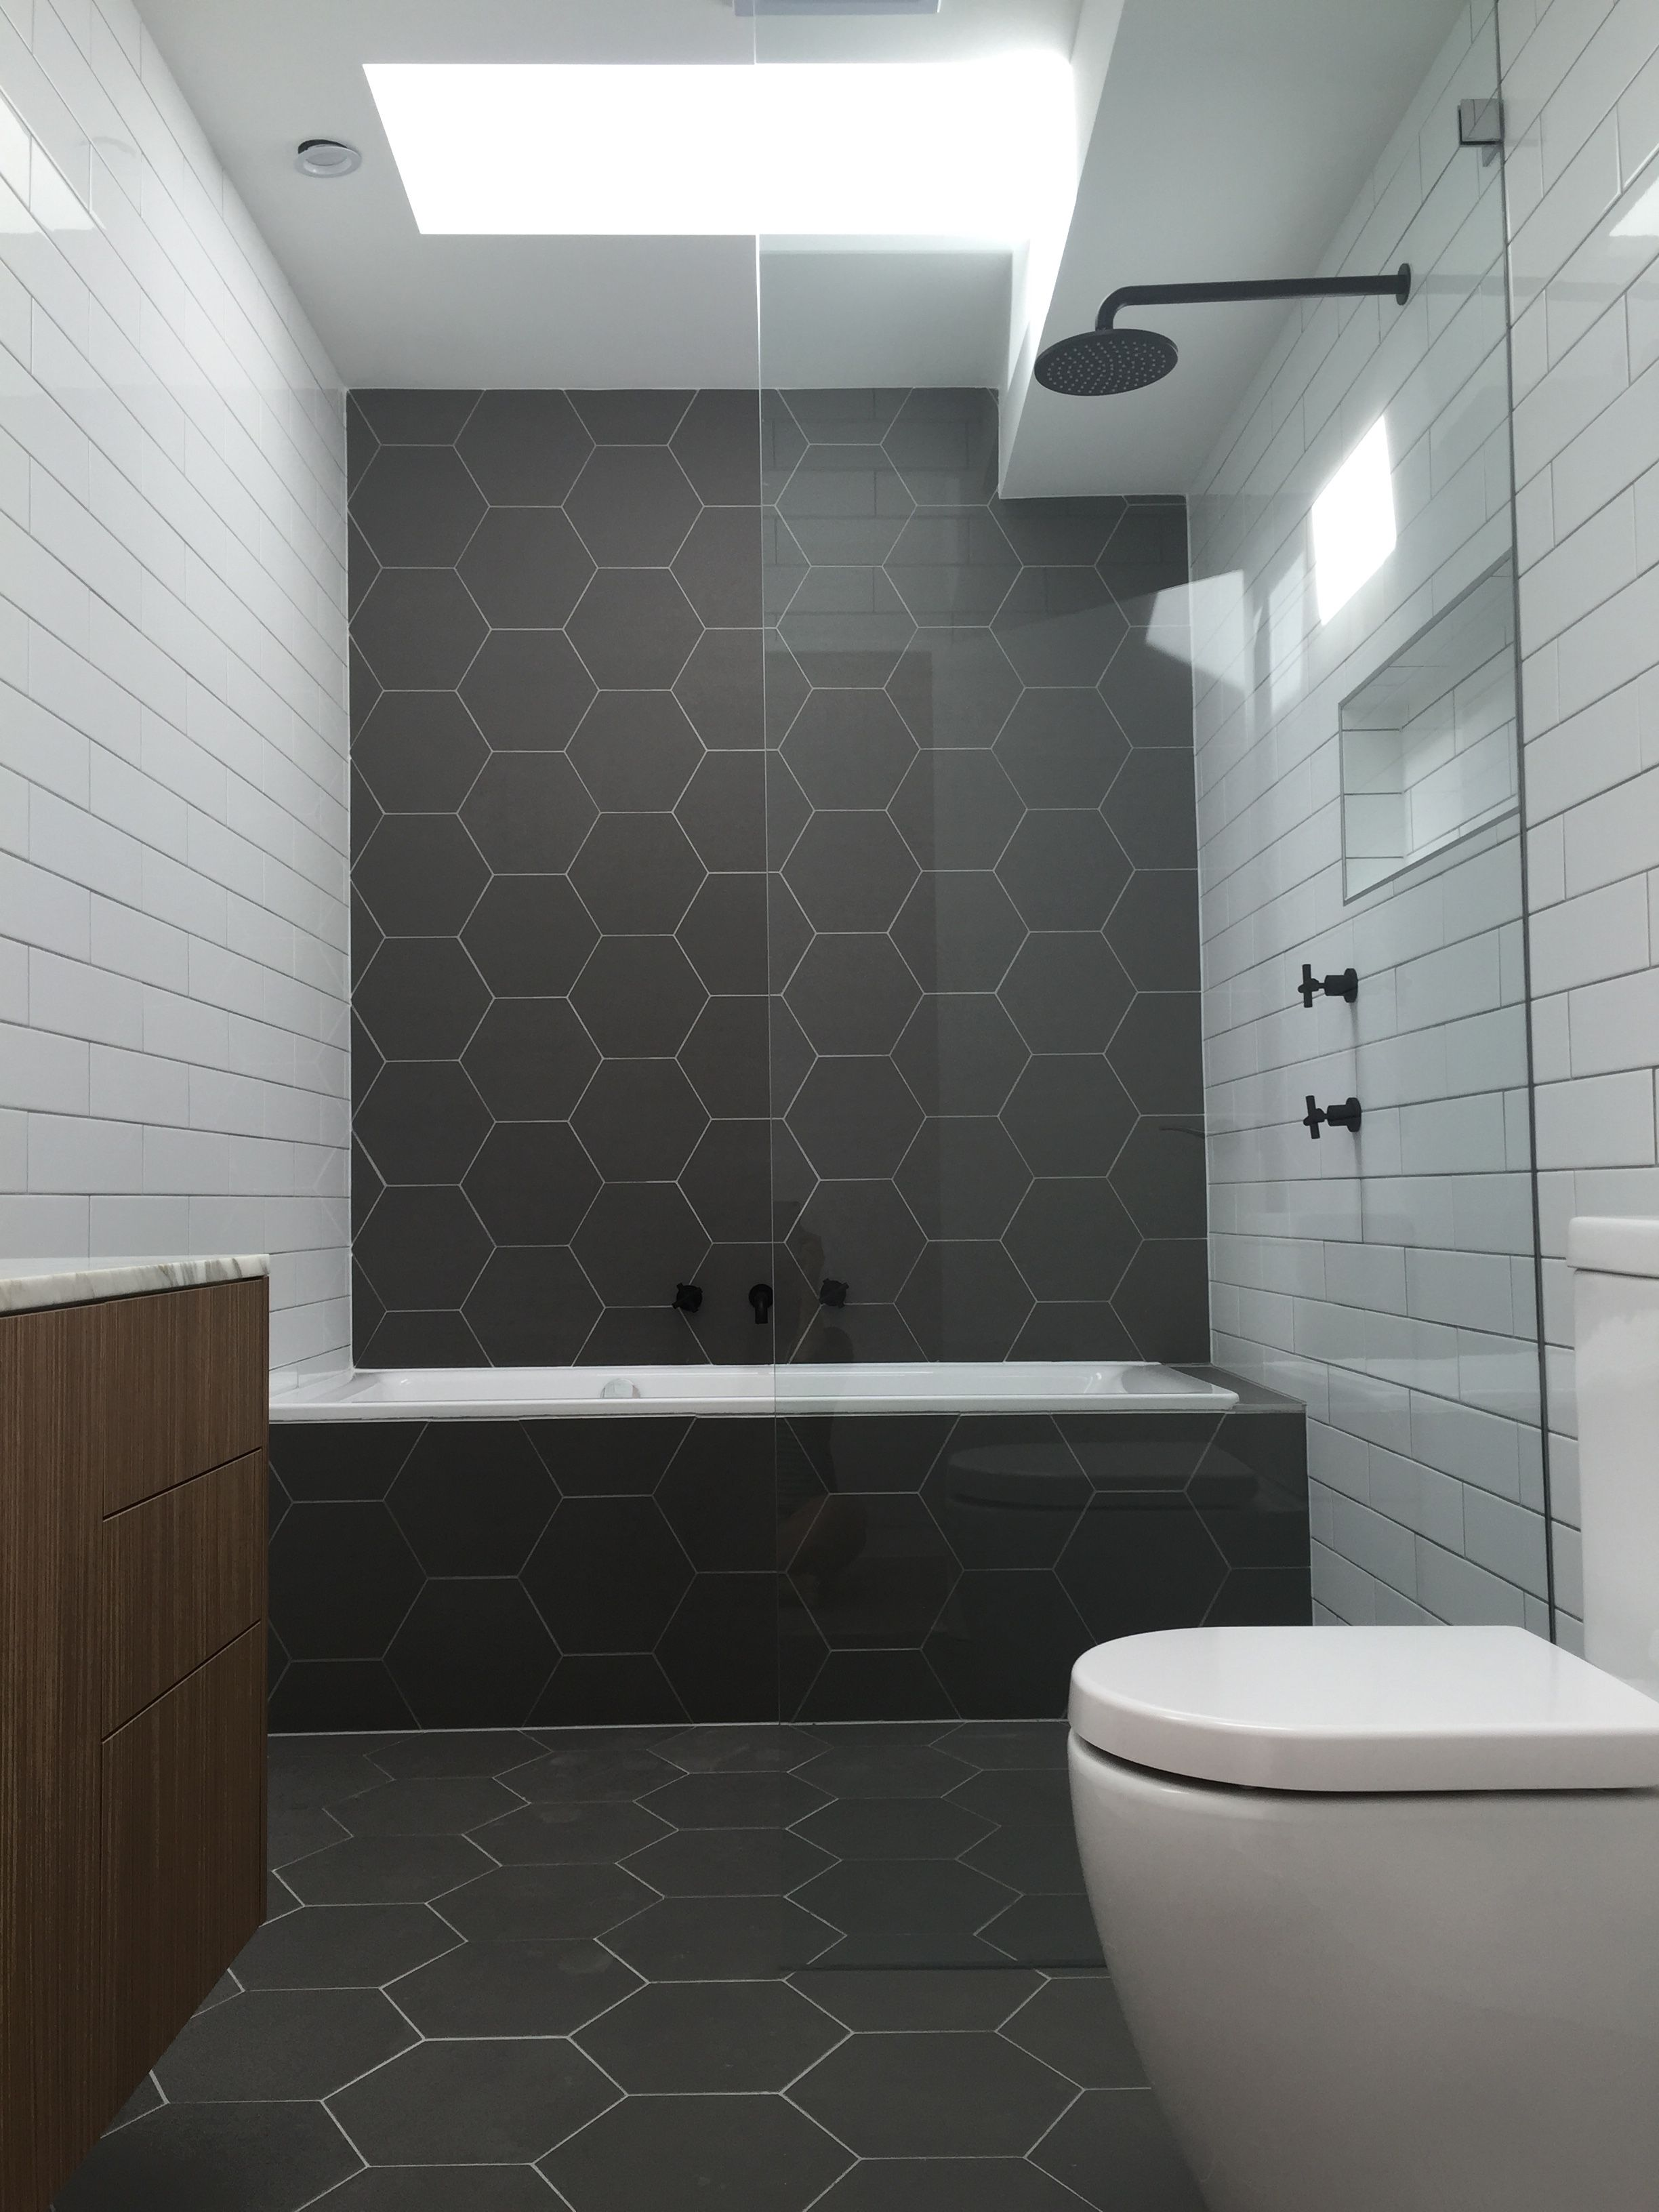 Hexagonal Tiles Monochrome Bathroom Matt Black Fittings